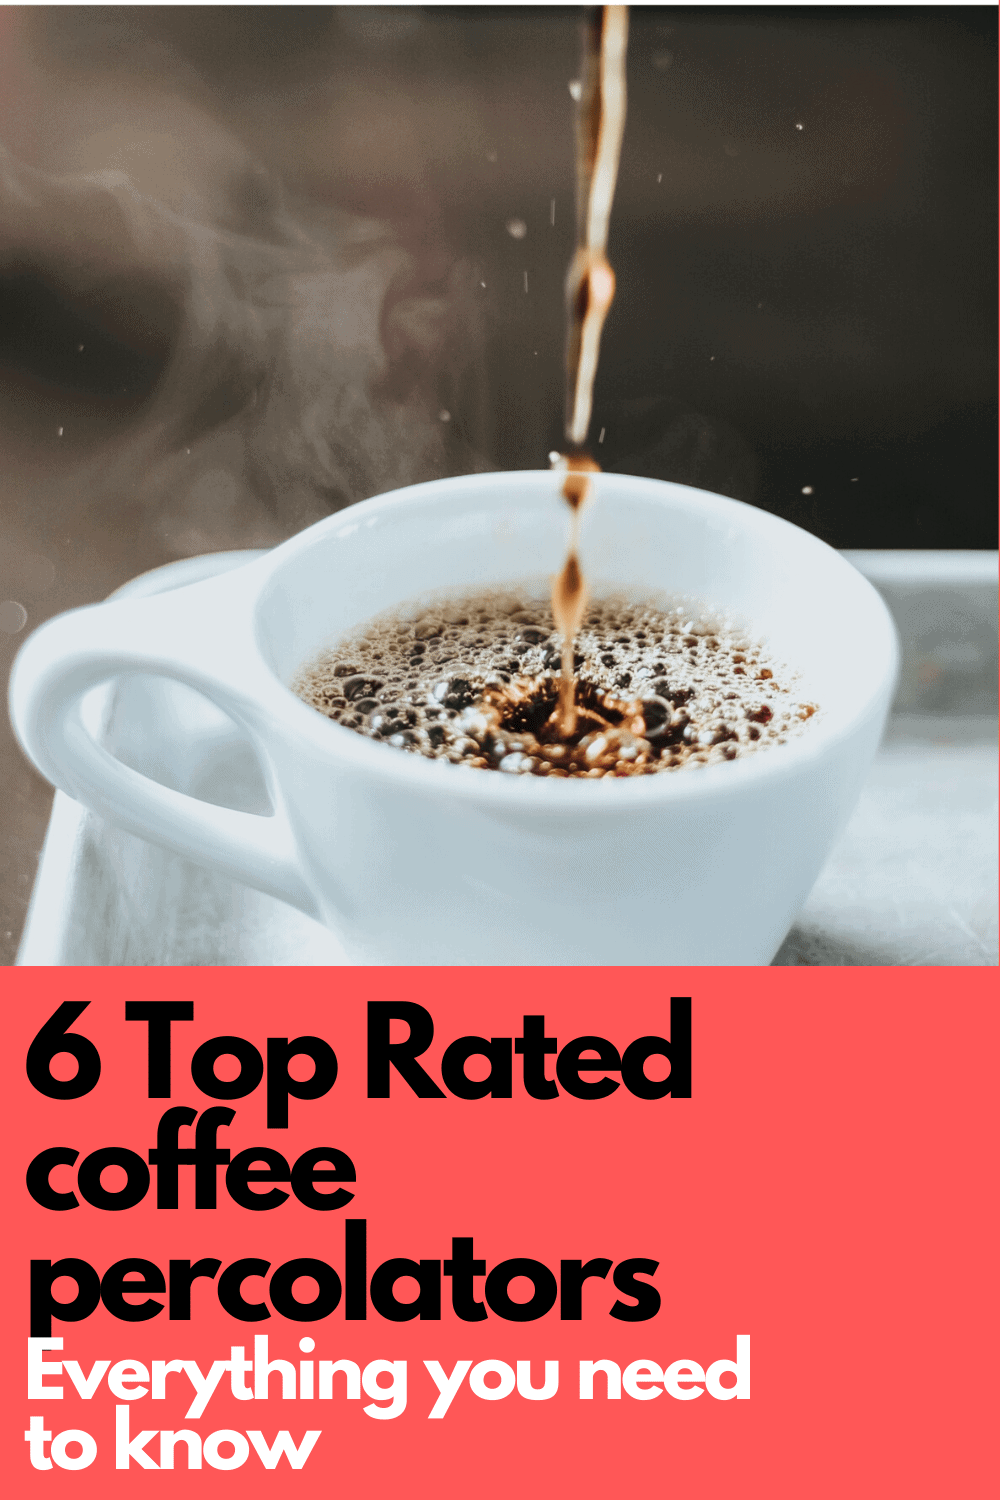 This article includes everything you need to know about coffee percolators from how to make coffee in a percolator to how to clean an electric percolator. You will find helpful reviews of the top 6 electric percolators as well as other information about how a percolator works and what is the right percolator coffee grind to use. Included in this article is a video tutorial of how to work an electric coffee percolator. Find THE BEST Coffee percolator on the market -APinchOfAdventure